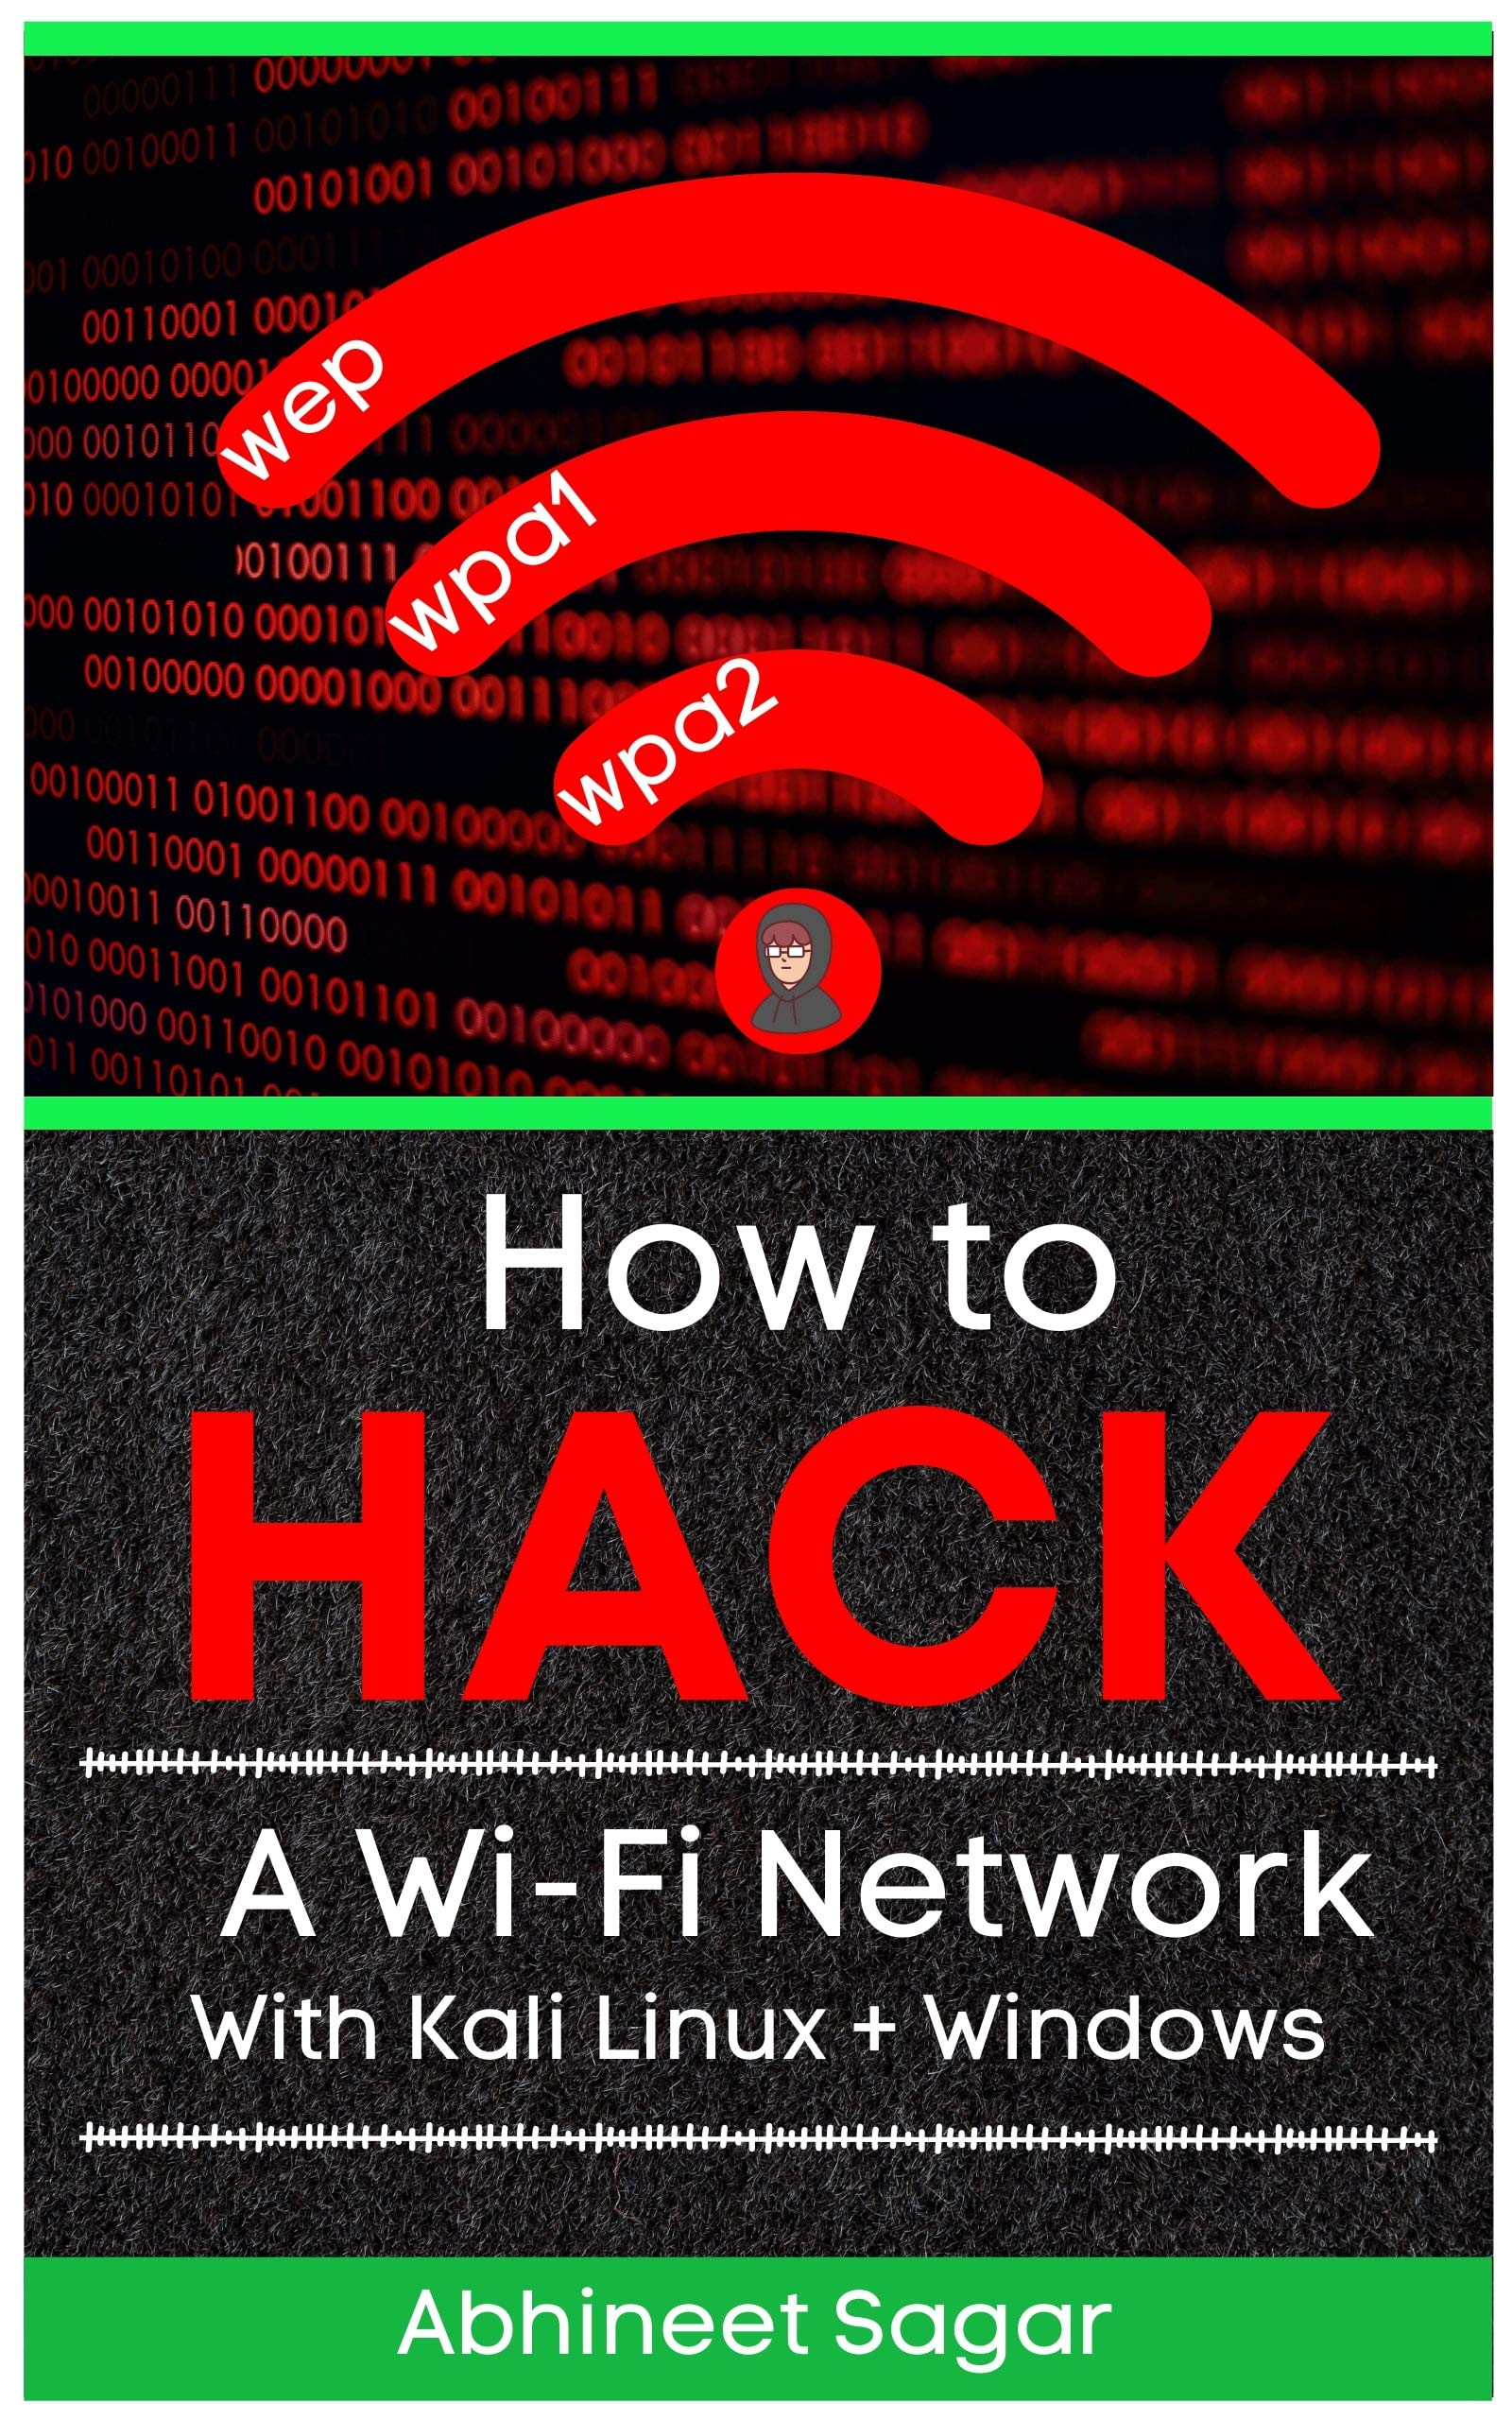 How to Hack a Wi-Fi Network with WPA/WPA2 security : An ebook For beginners and break any kind of Network Perimeter with Aircrack, Wifiphisher